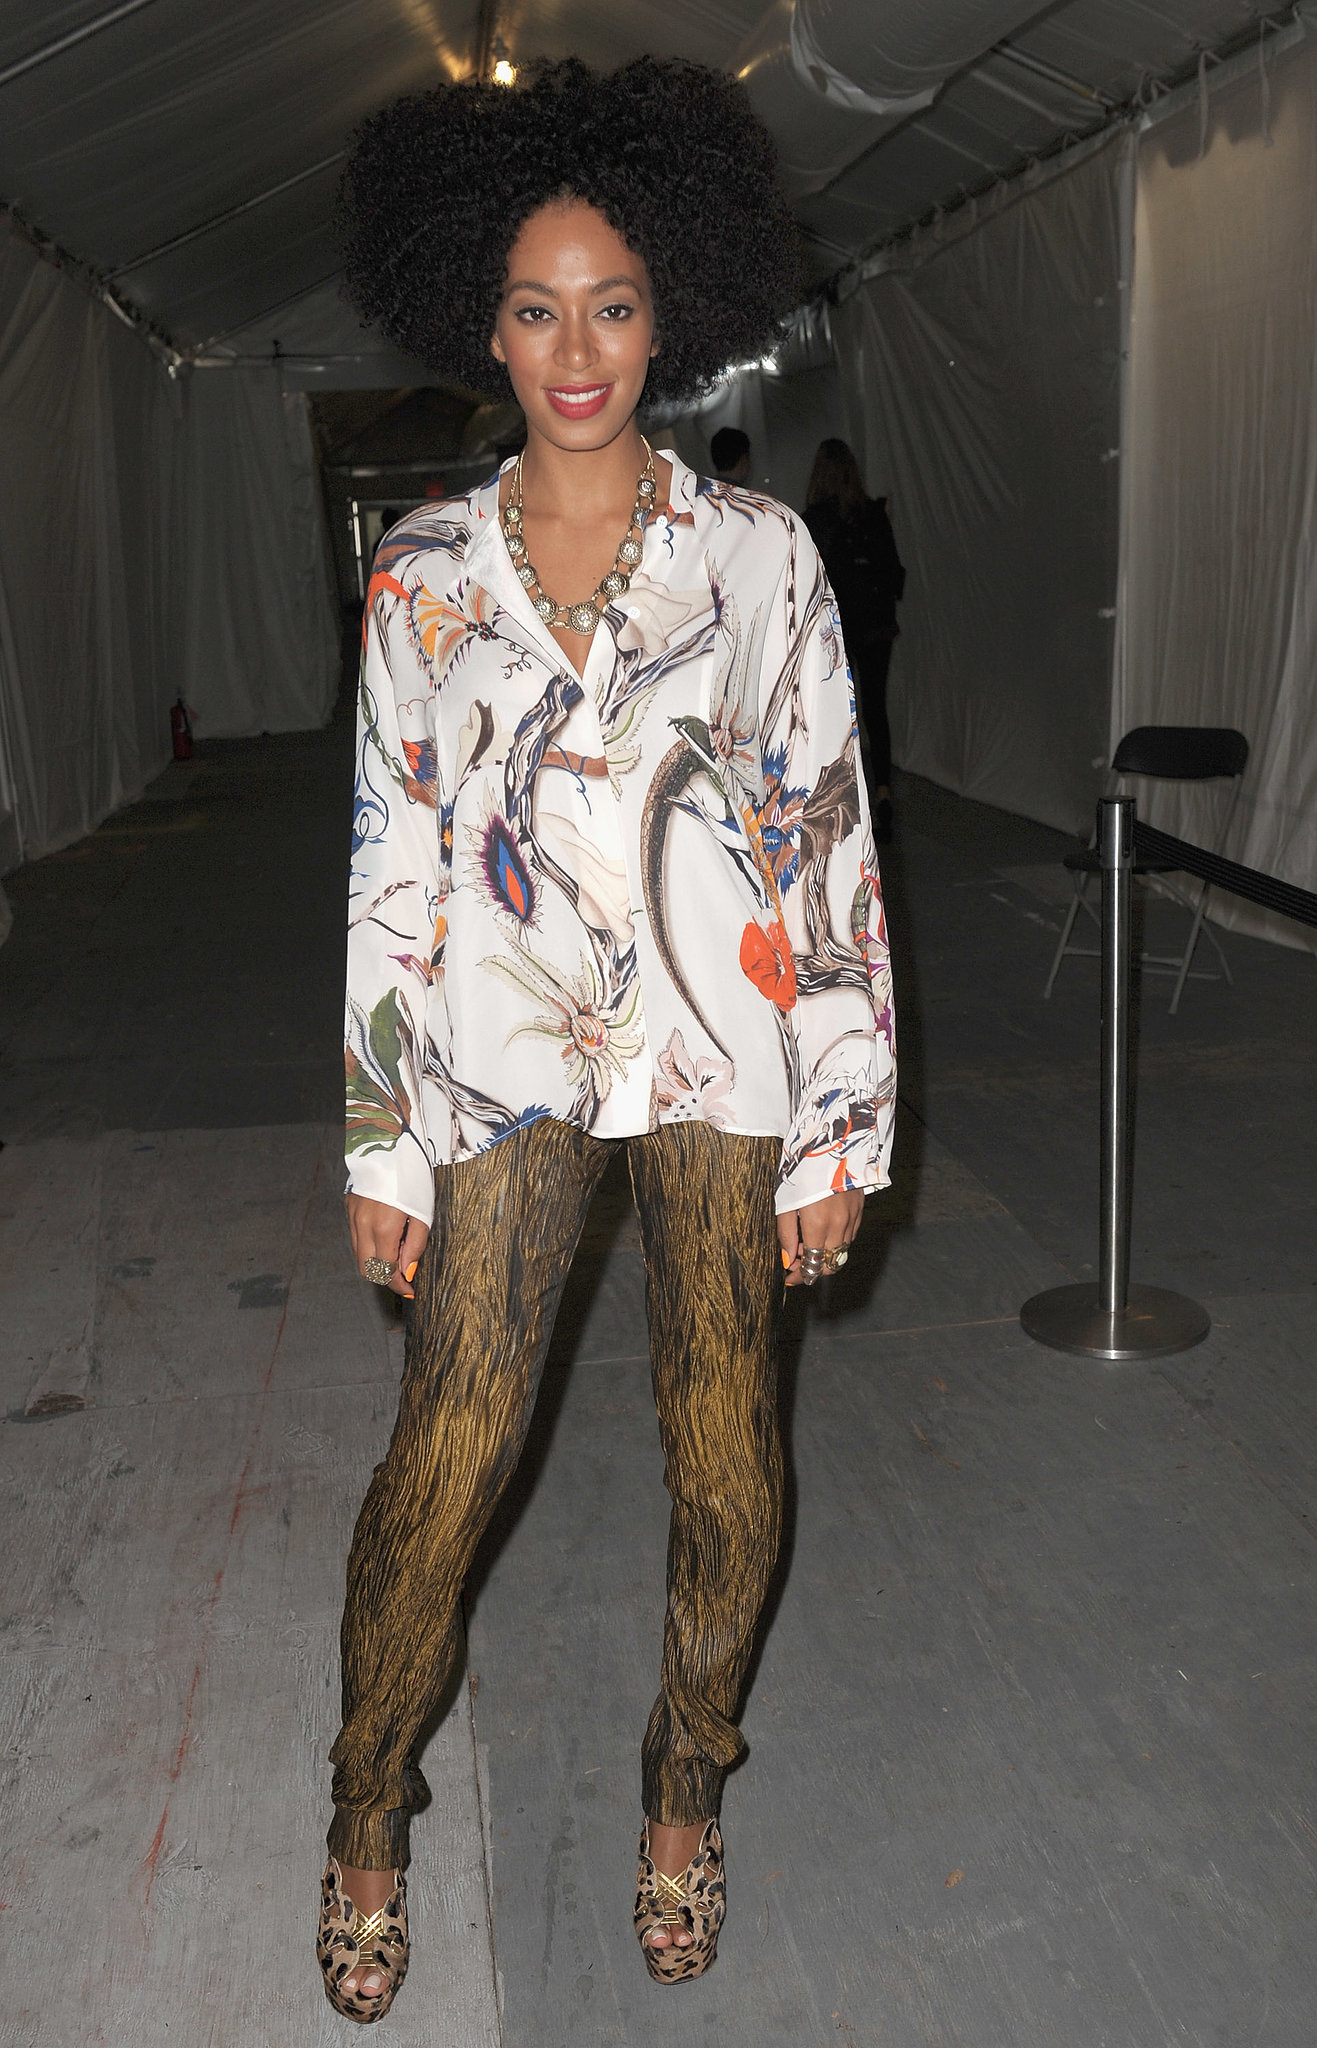 Solange styled her gold-and-black leggings with a floral button-down blouse and cutout leopard sandals during NYFW Spring 2012.